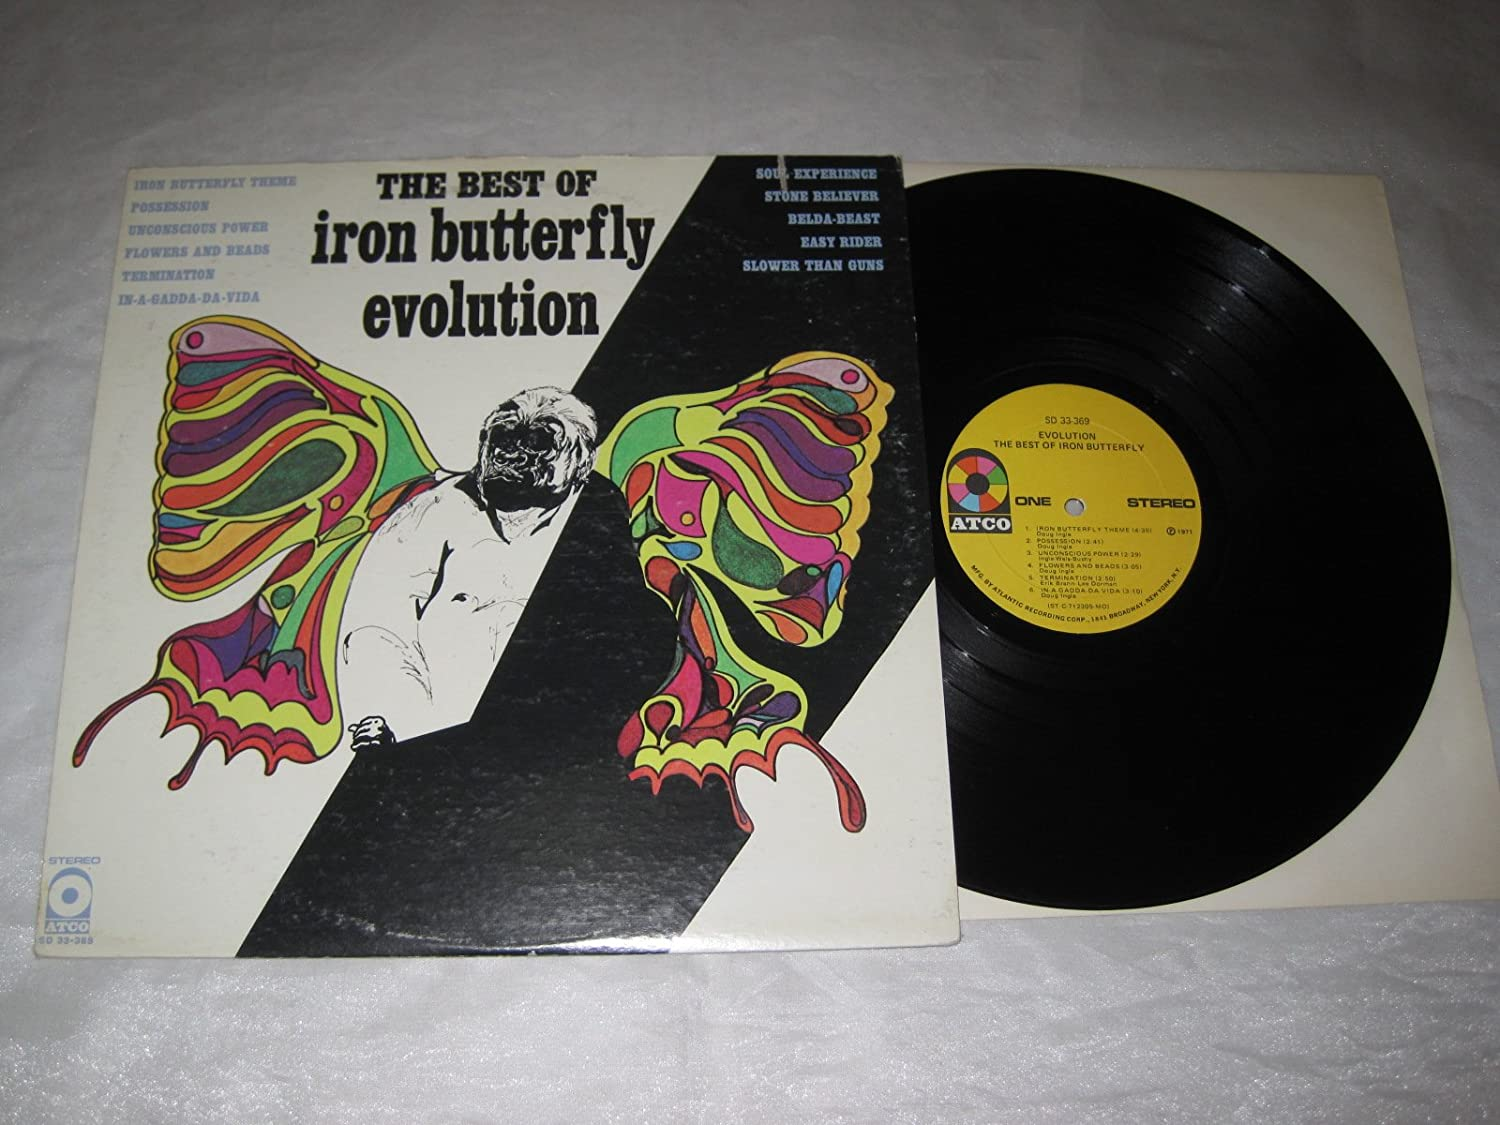 Evolution - The Best Of Iron Butterfly